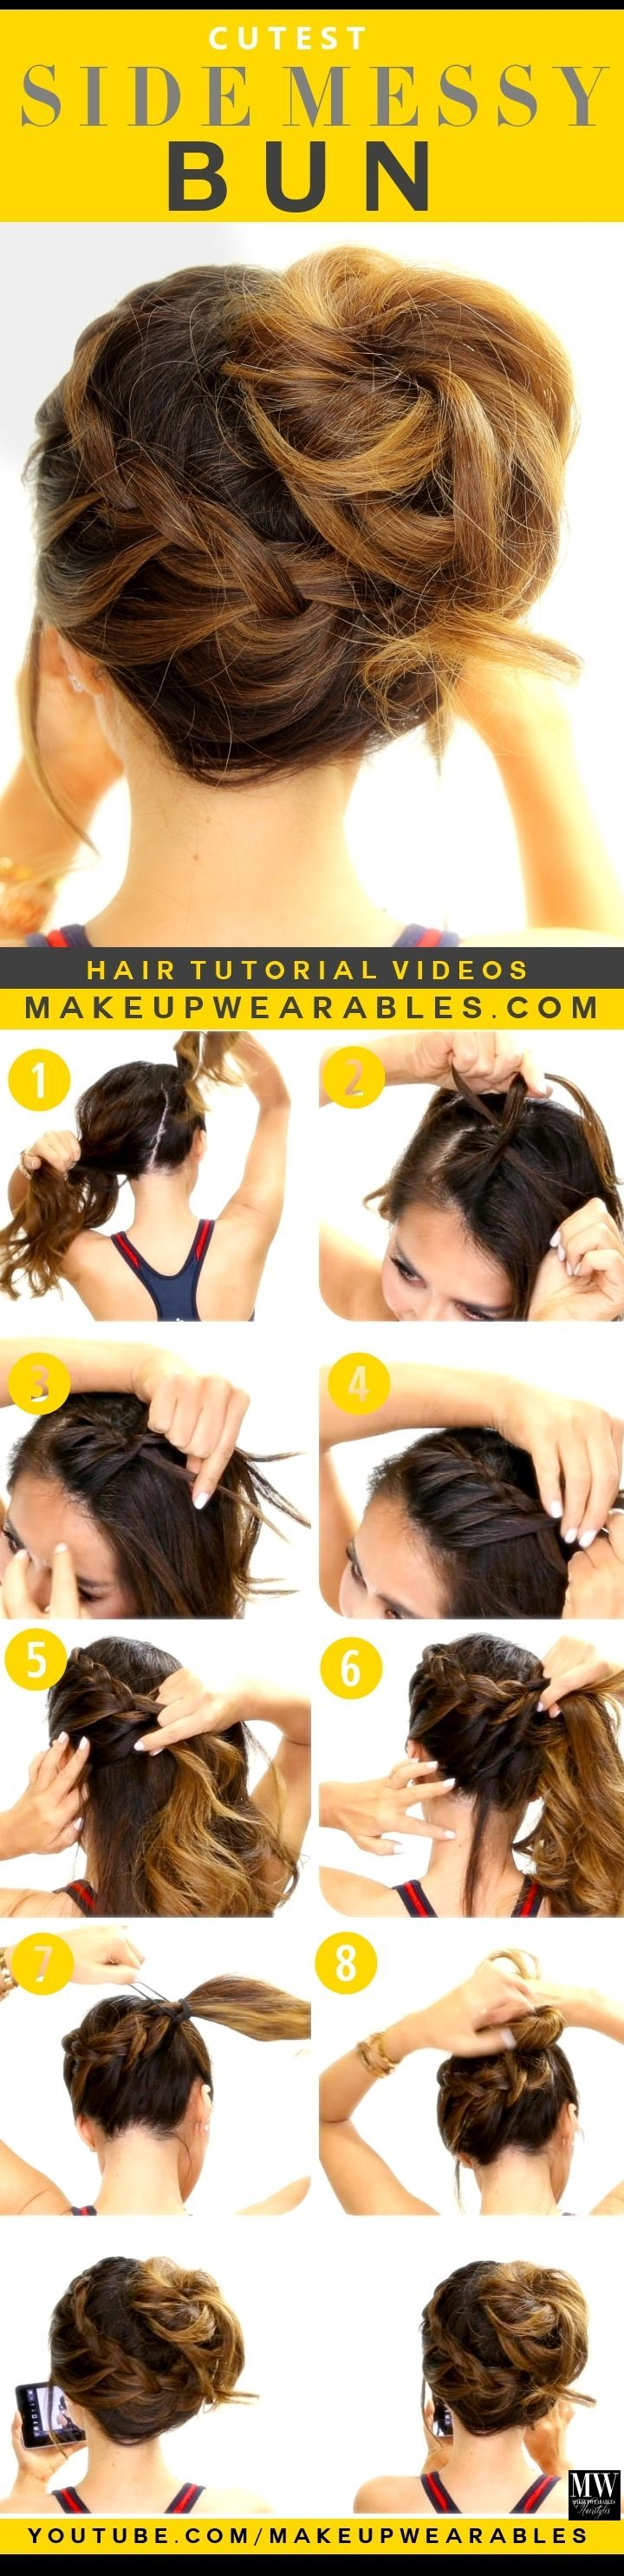 DIY Side Messy Bun peinados mamá Pinterest